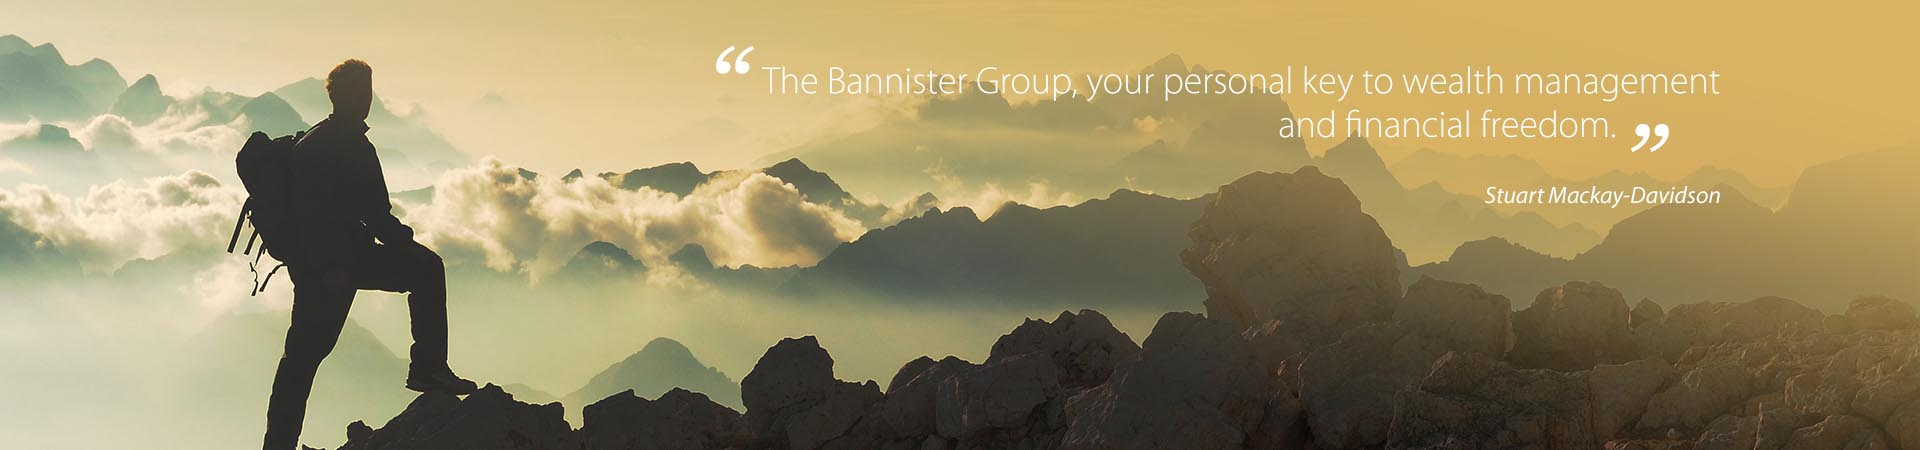 Bannister Group